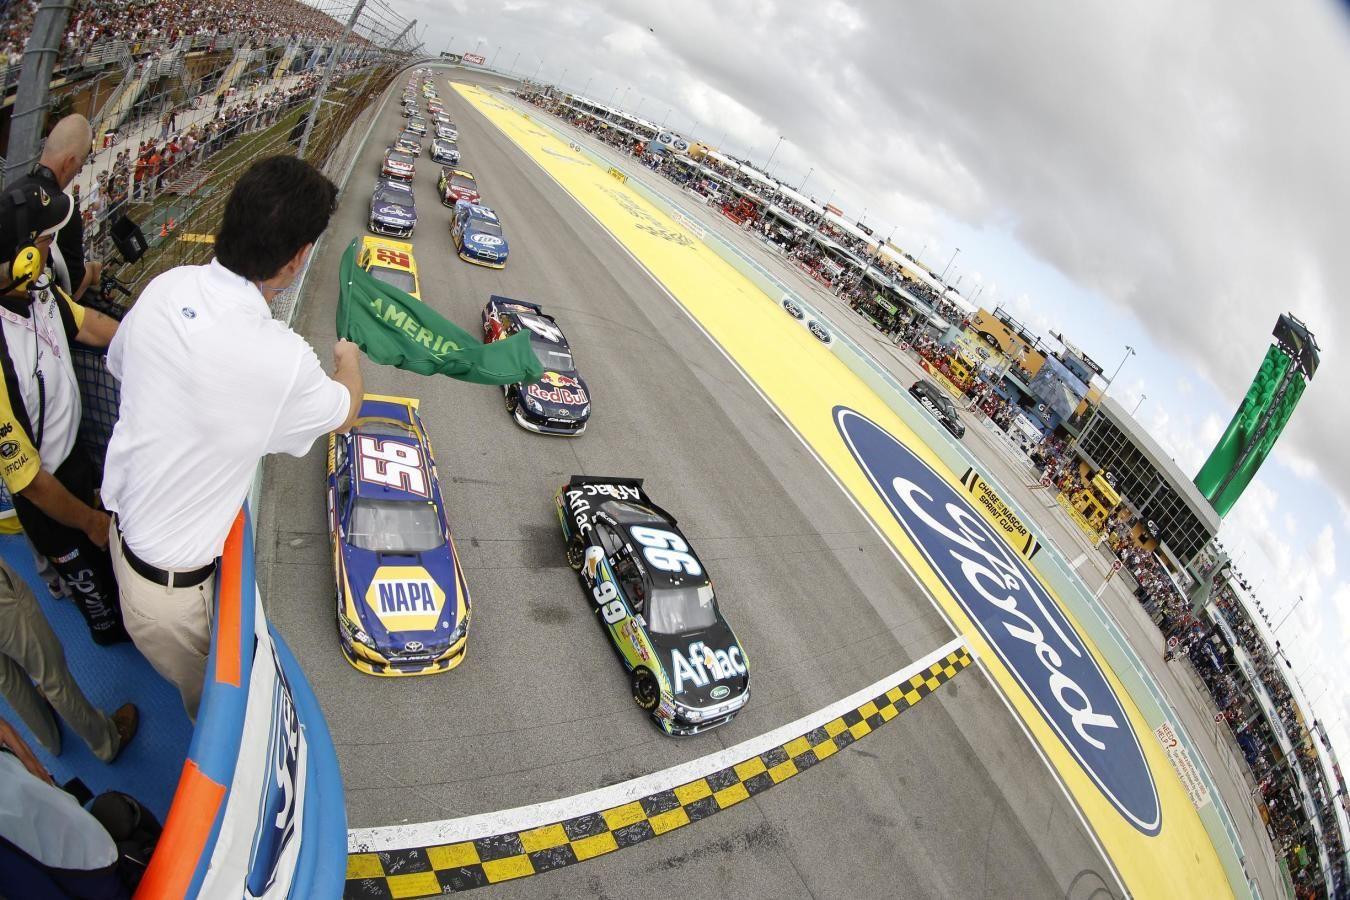 Green Flag at Start/Finish Line